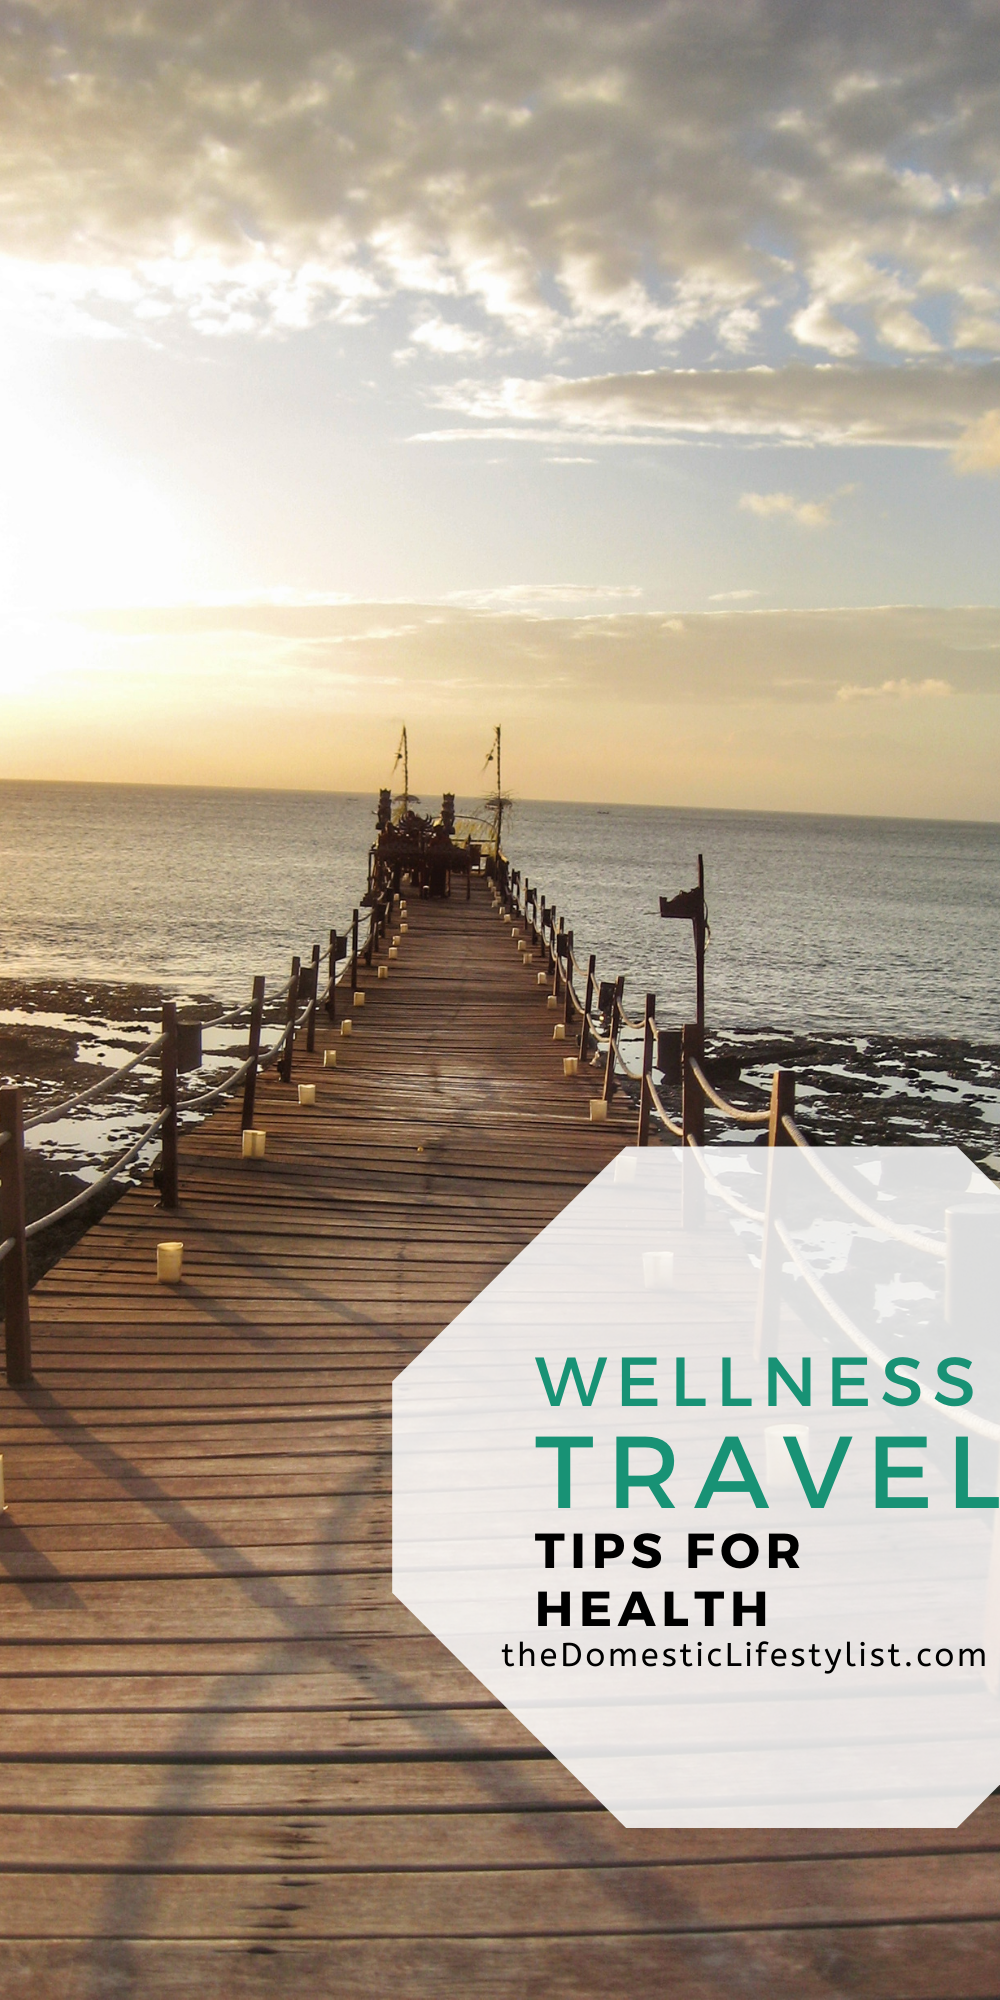 Tips for Wellness Travel